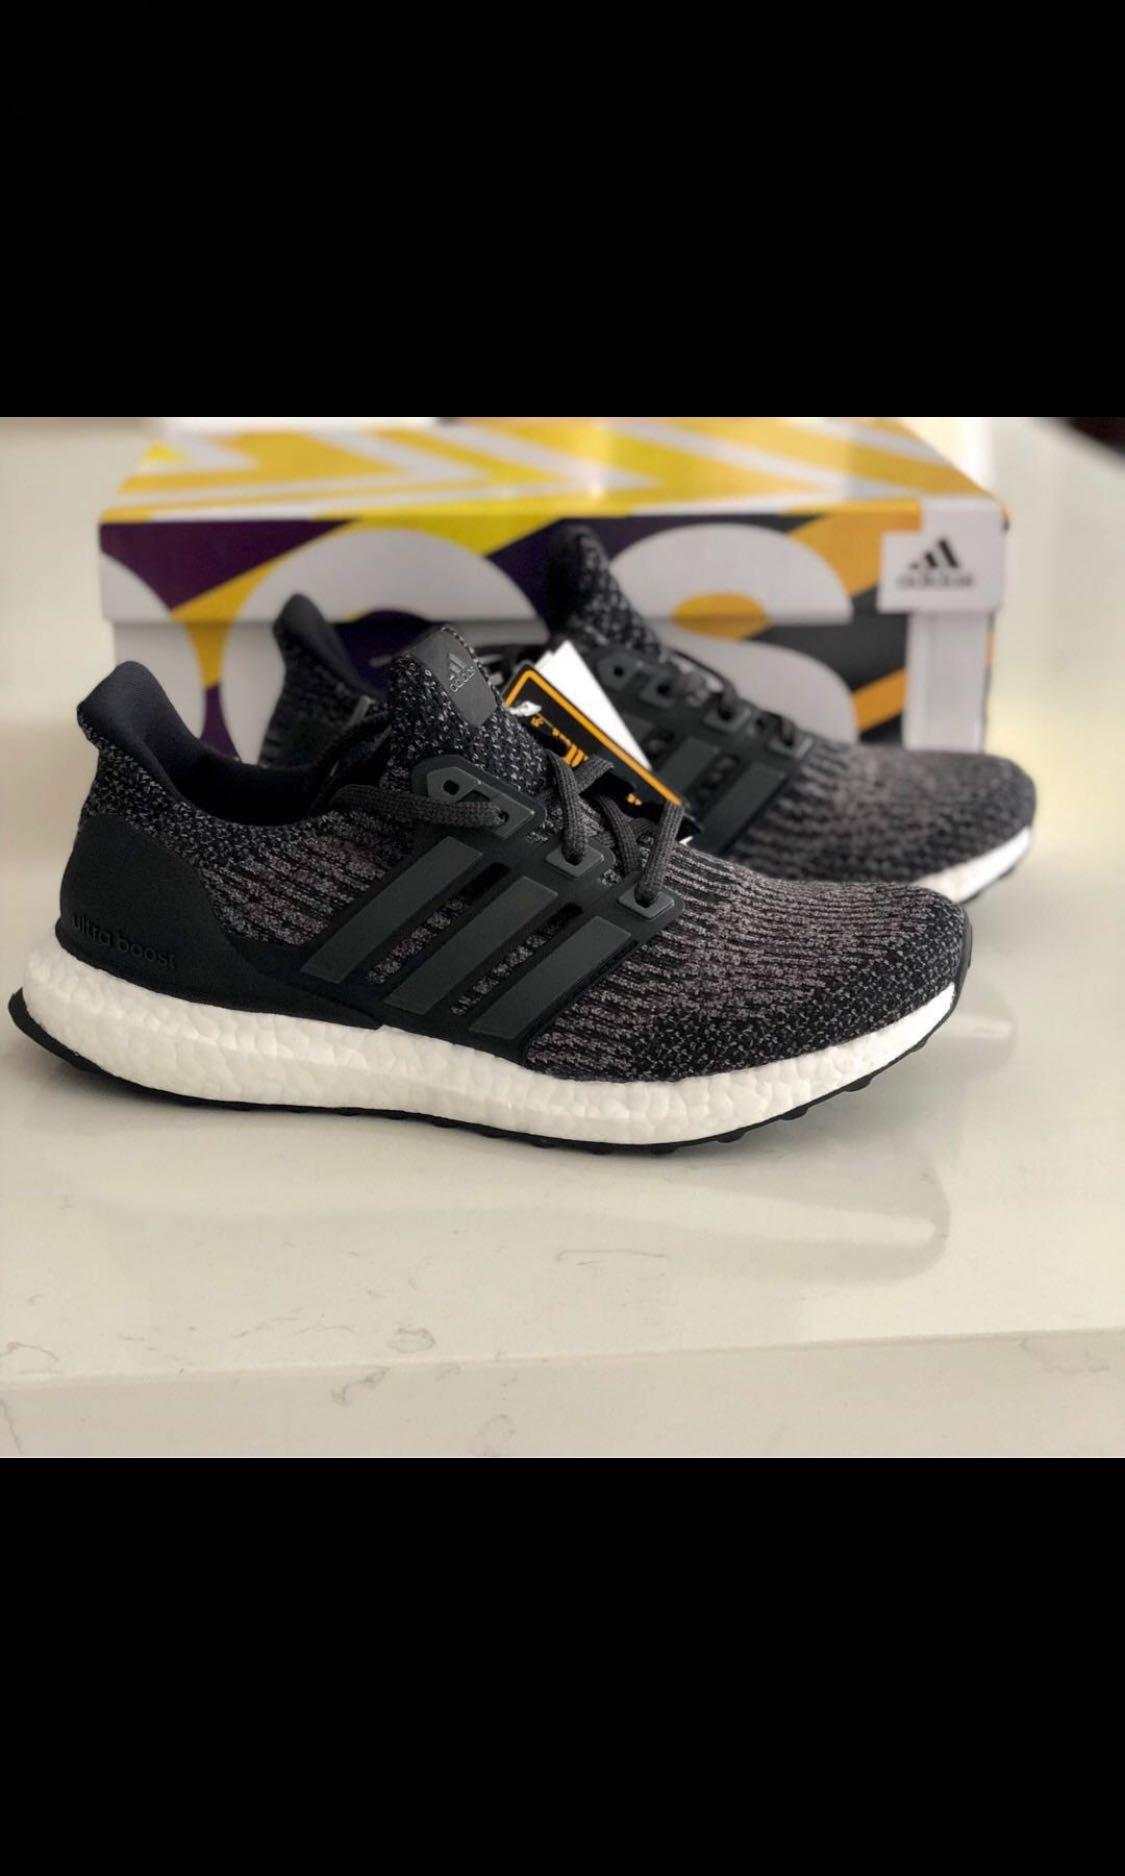 official photos 752b1 90936 Clearance sales 🔥Adidas Ultraboost 3.0, Women's Fashion ...